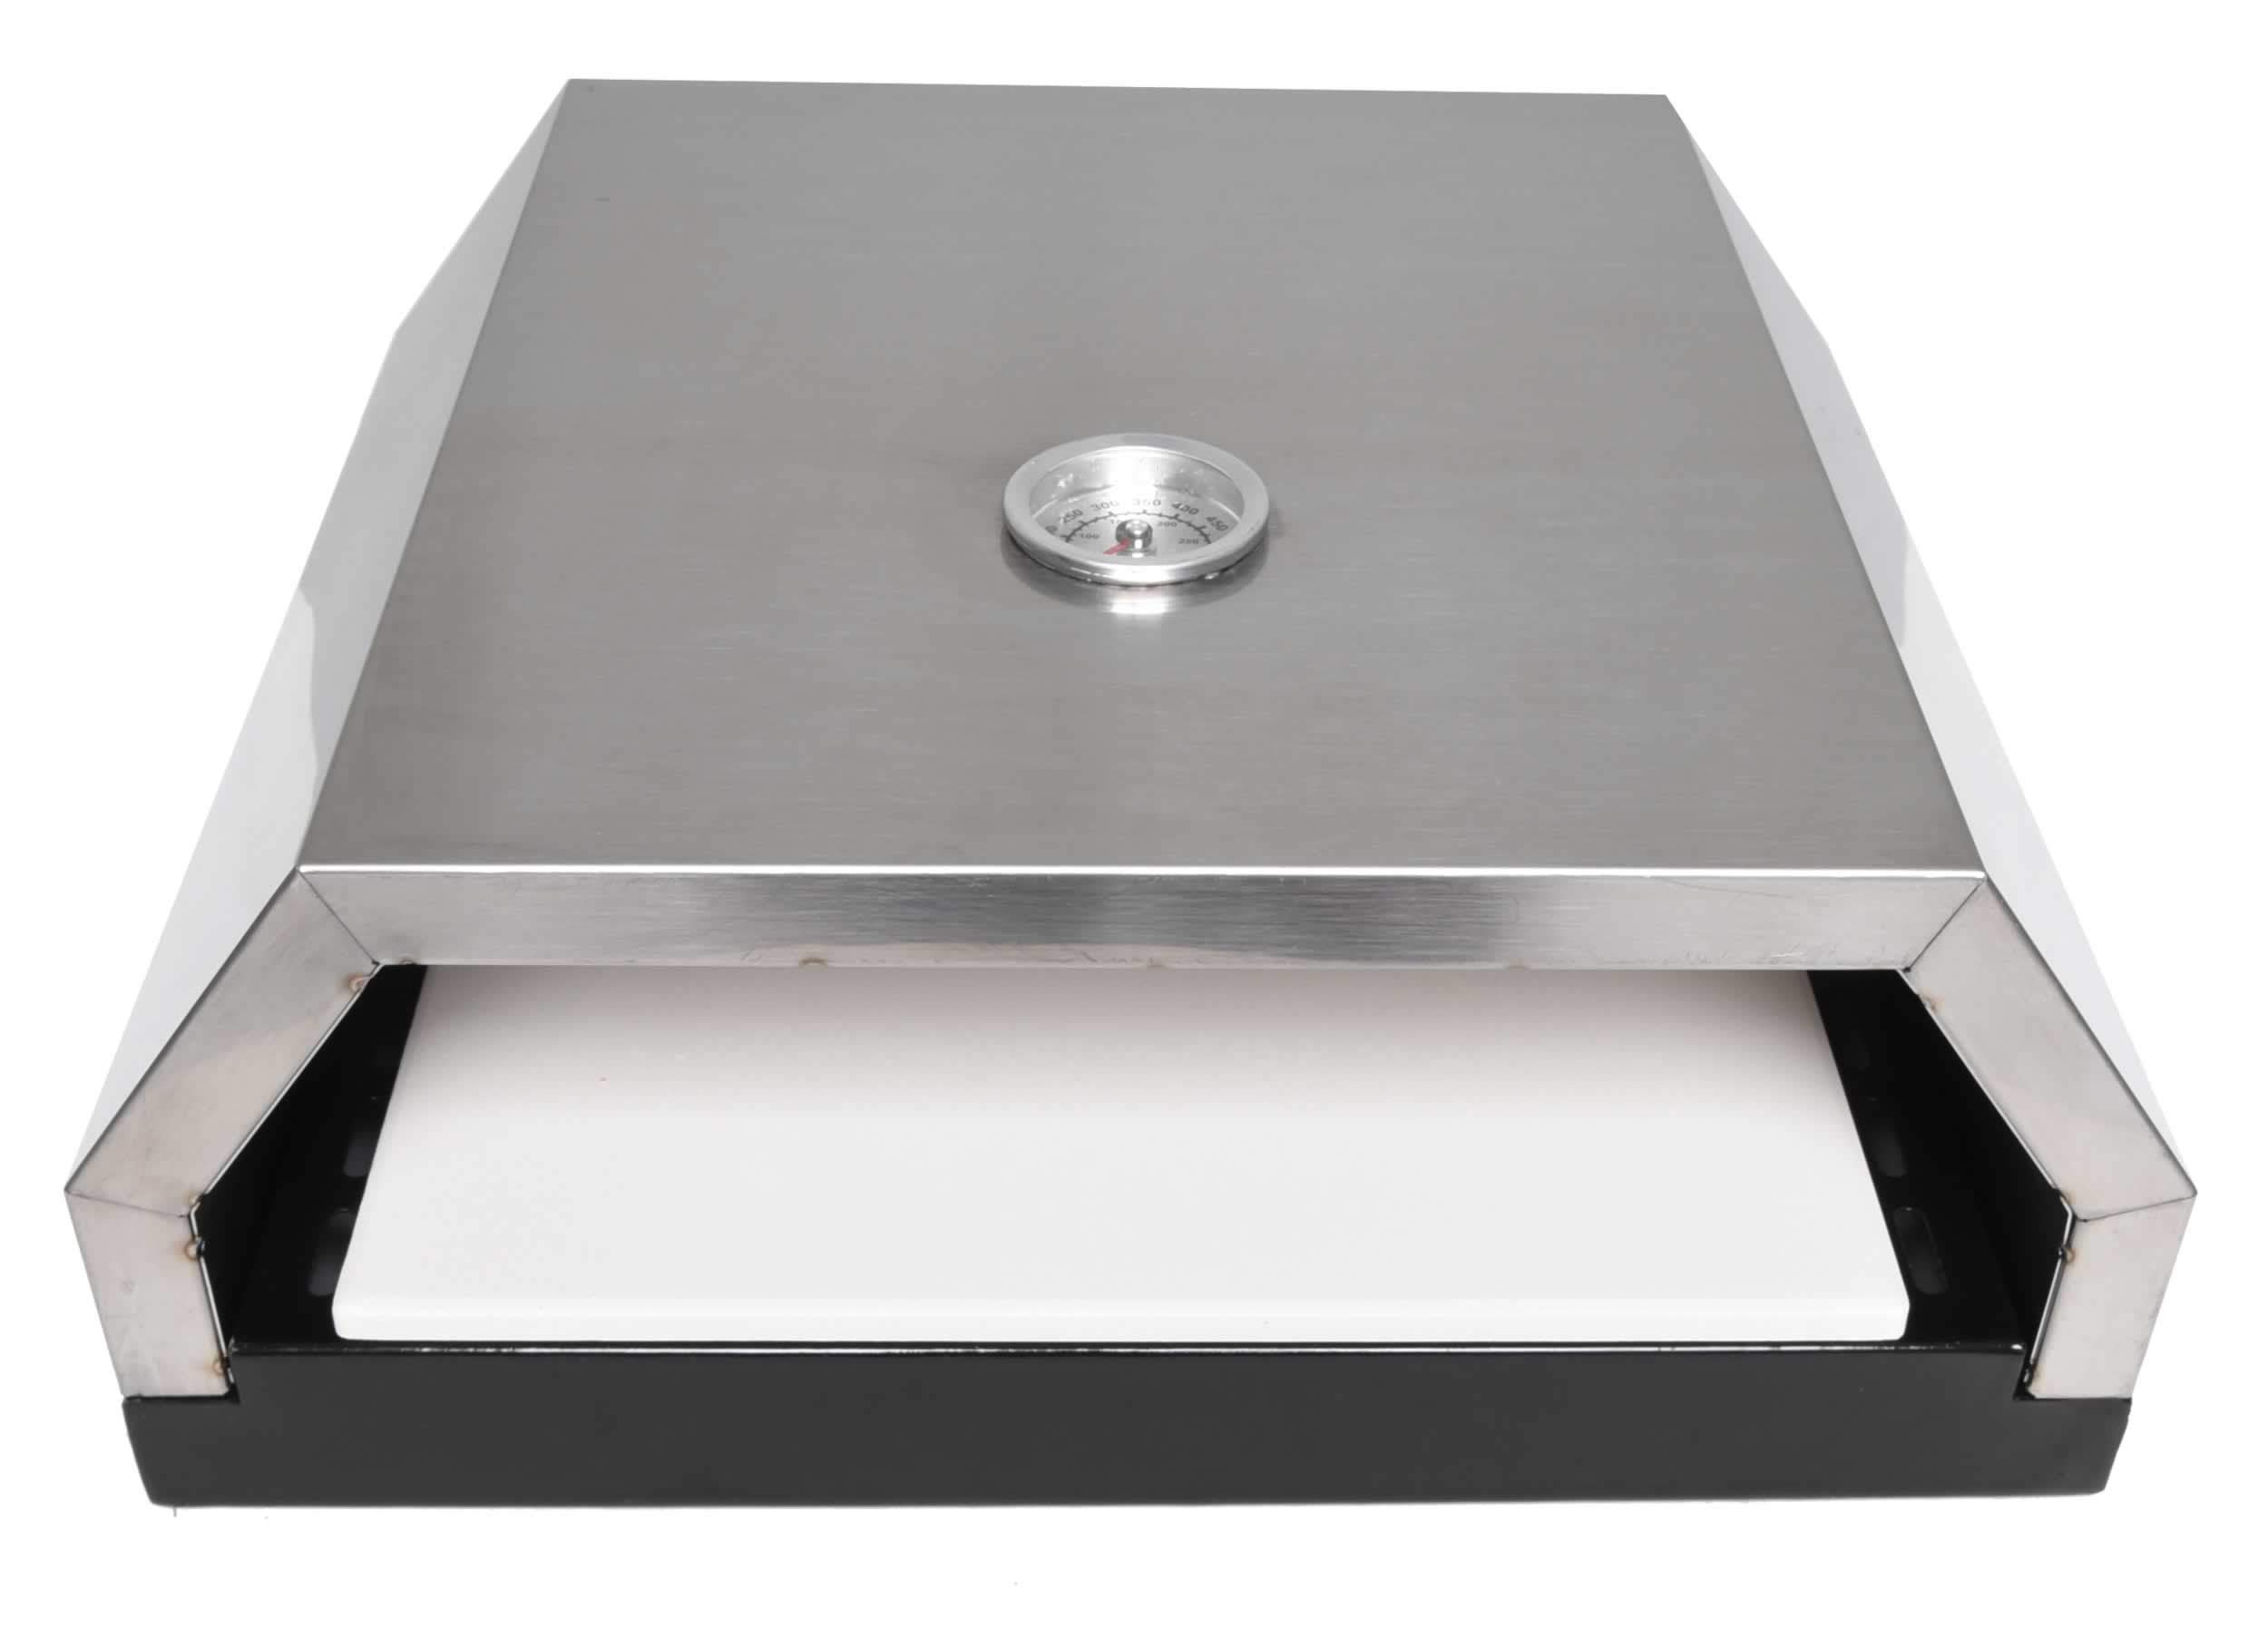 Zenvida Grill Top Pizza Oven with Stone for Gas or Charcoal Grill by Zenvida